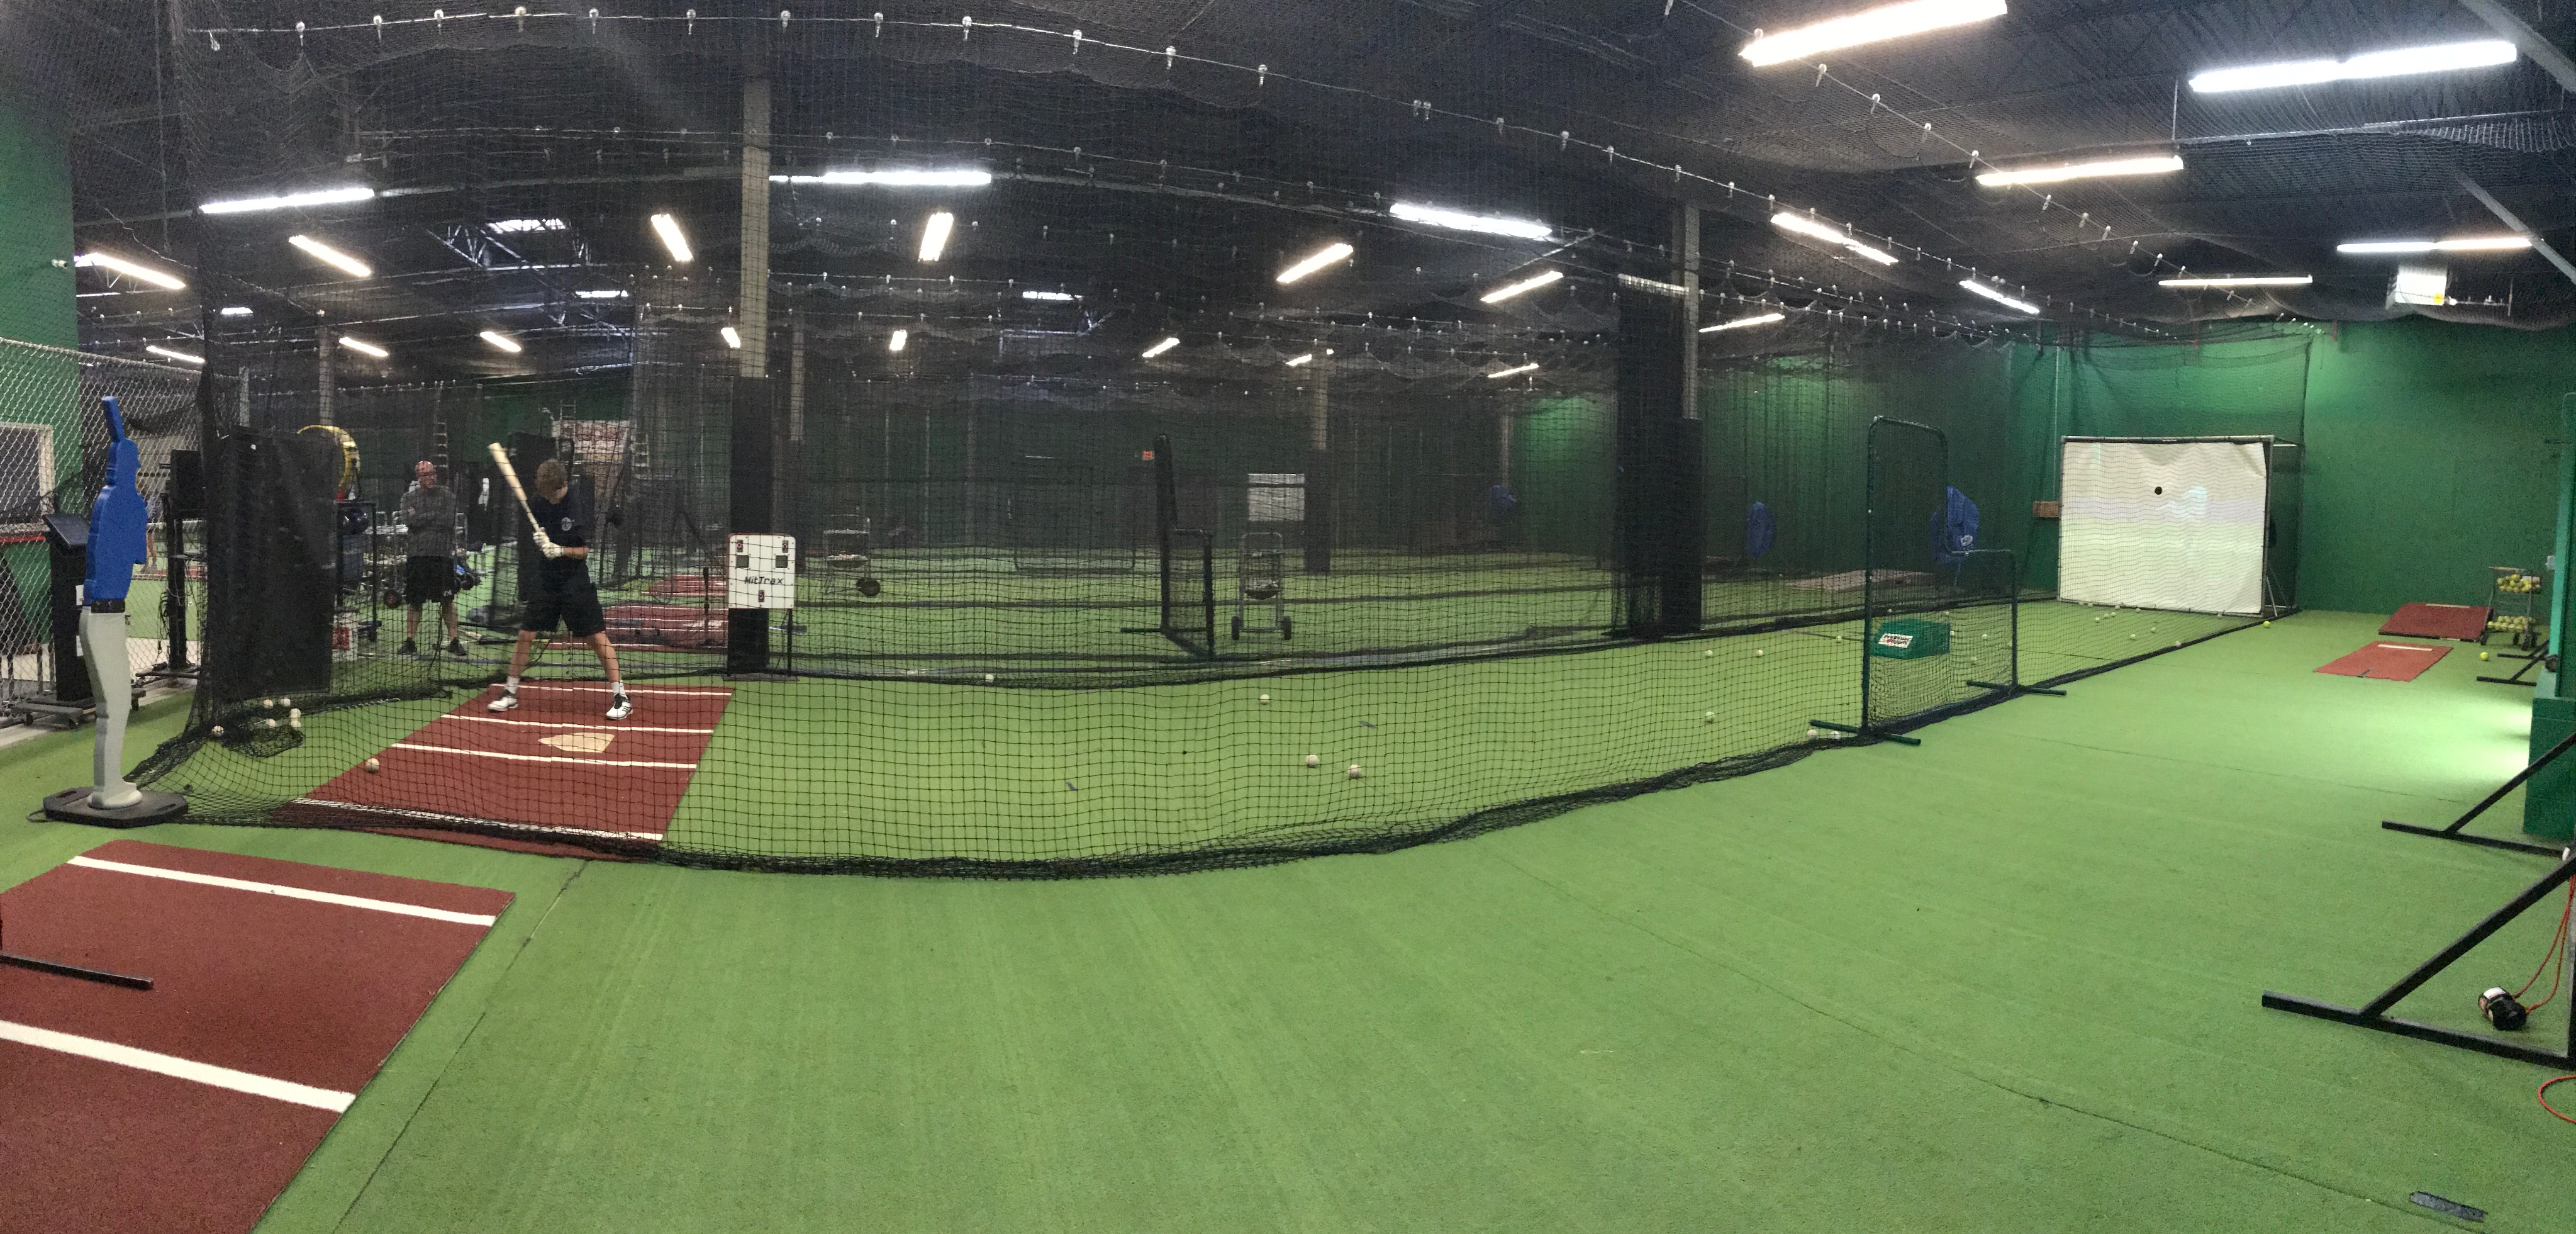 Virginia Baseball Training Facility